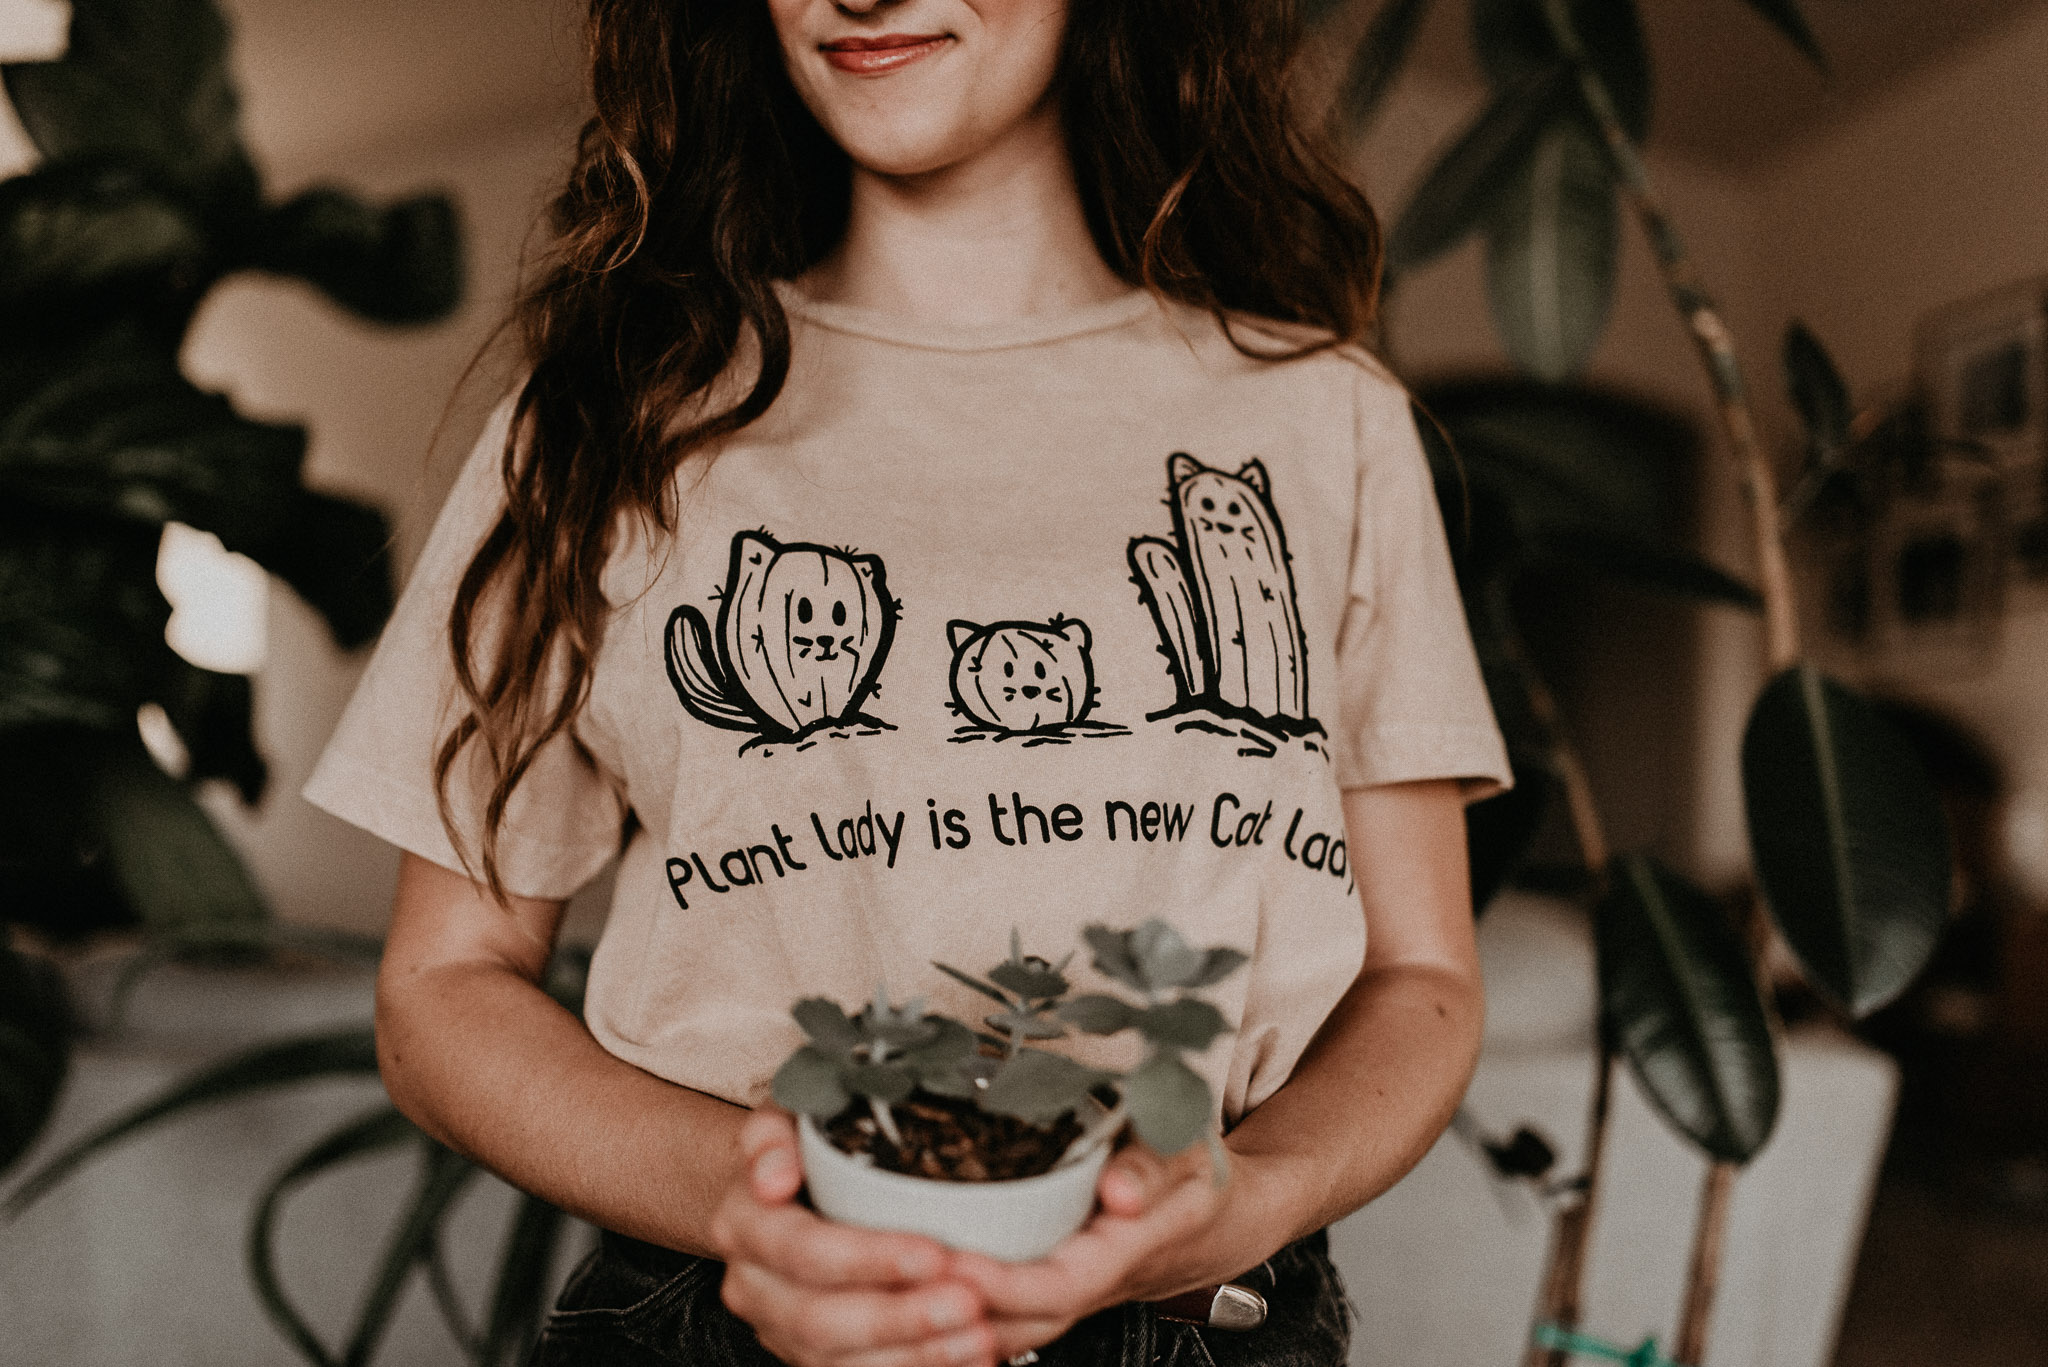 Plant Lady is New Cat Lady T Shirt Succulent Care Planting Tips Tricks Als 5-1-1 Mix Boise Senior Photographer Makayla Madden Photography Boise Boudoir Photographer Plant Advice Houseplants